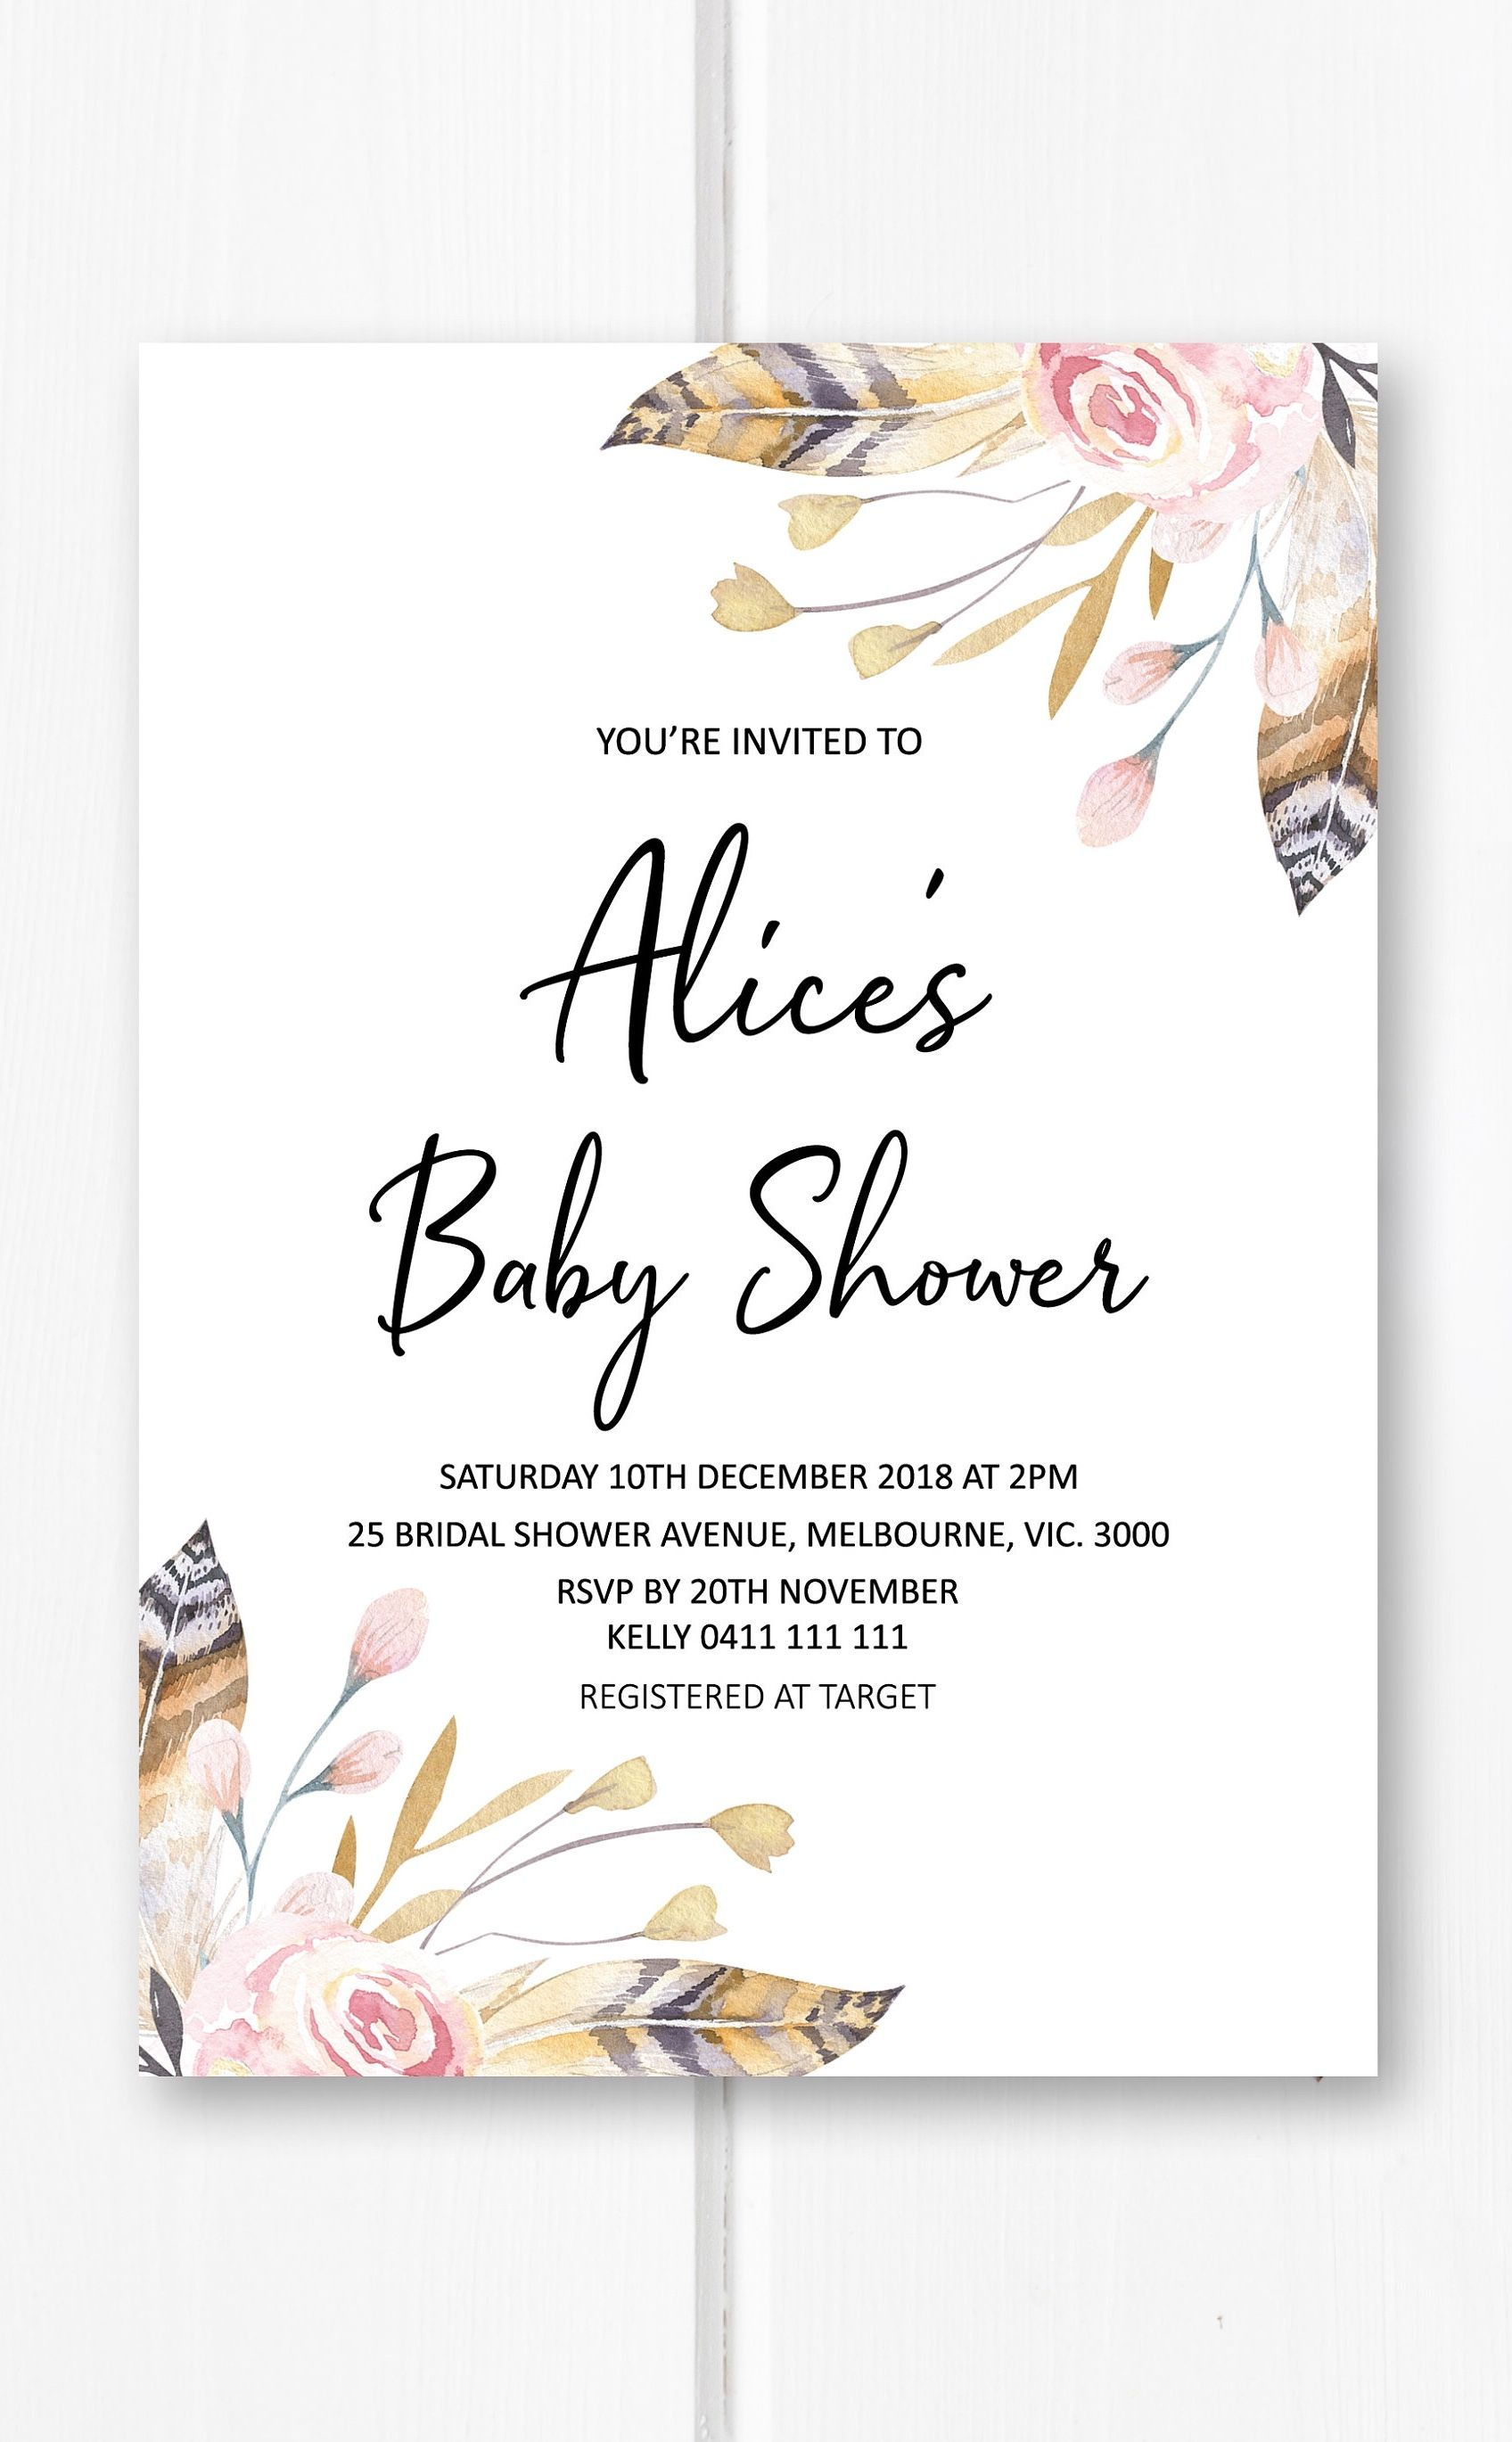 Boho baby shower invitation girl printable baby shower invites pink boho baby shower invitation girl printable baby shower invites pink girl baby shower invitations invite baby girl feather floral bas17 filmwisefo